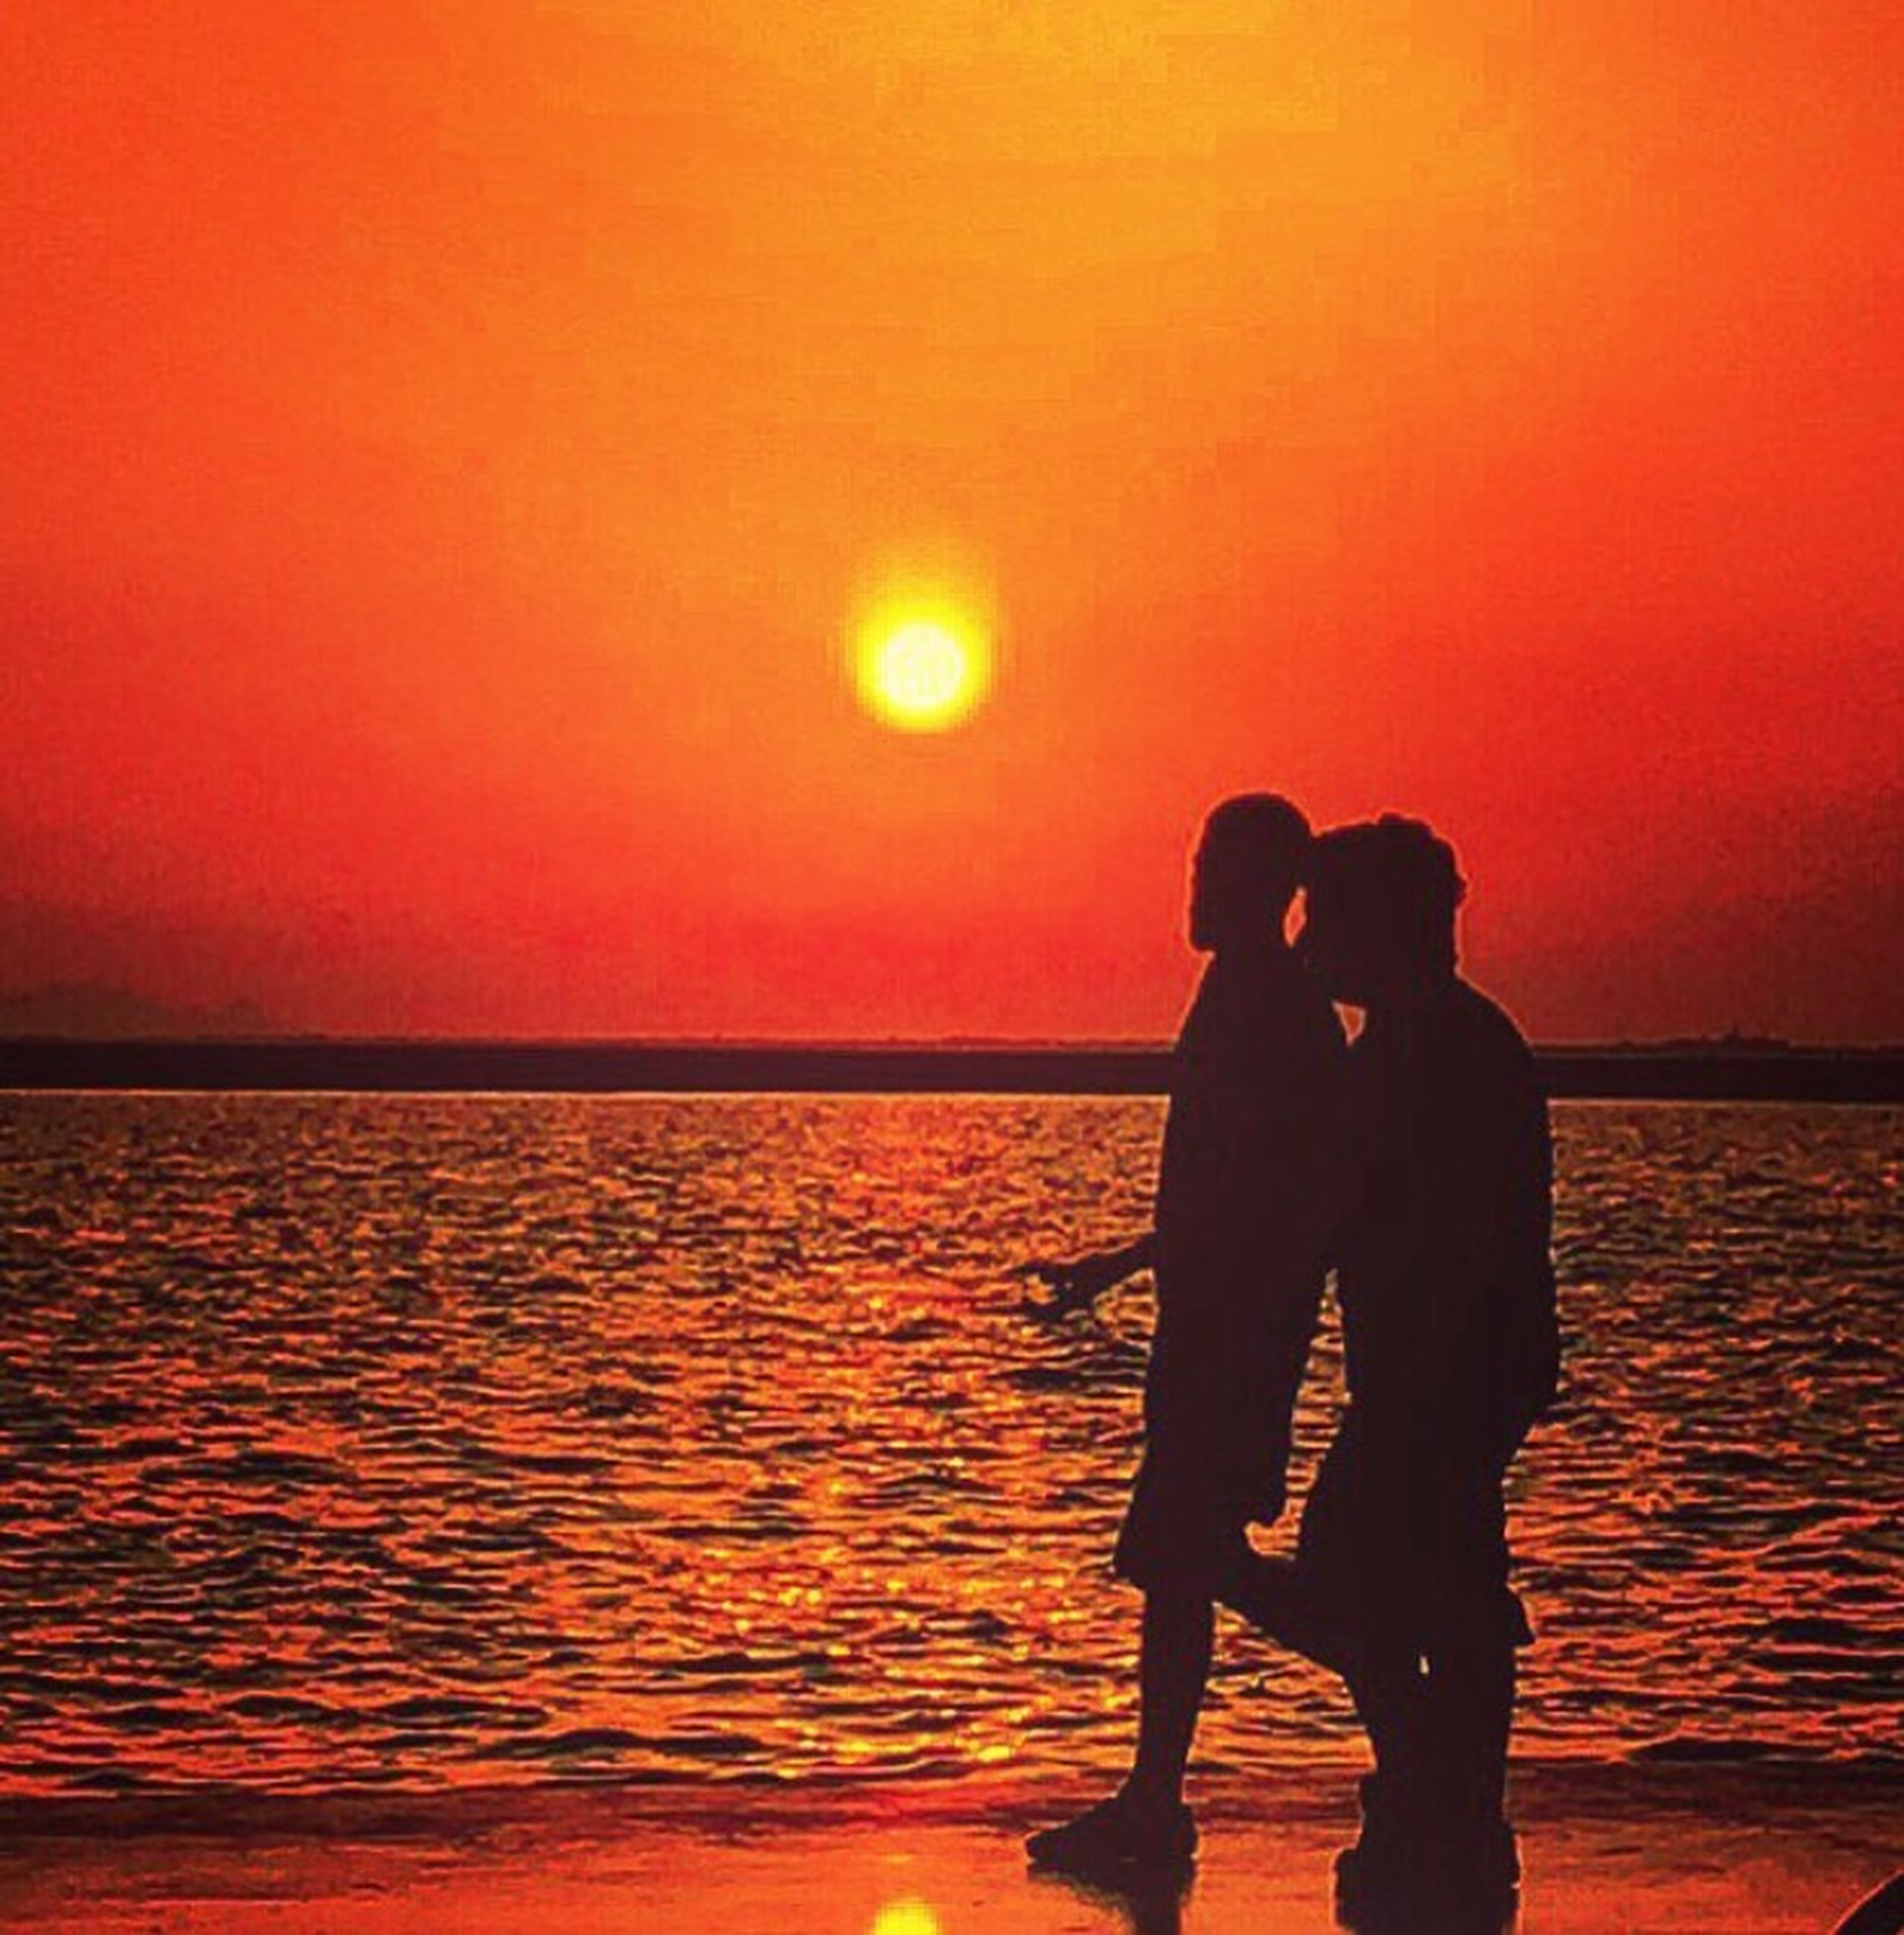 sunset, orange color, water, silhouette, sea, sun, standing, leisure activity, lifestyles, horizon over water, scenics, beauty in nature, tranquil scene, men, idyllic, tranquility, sky, nature